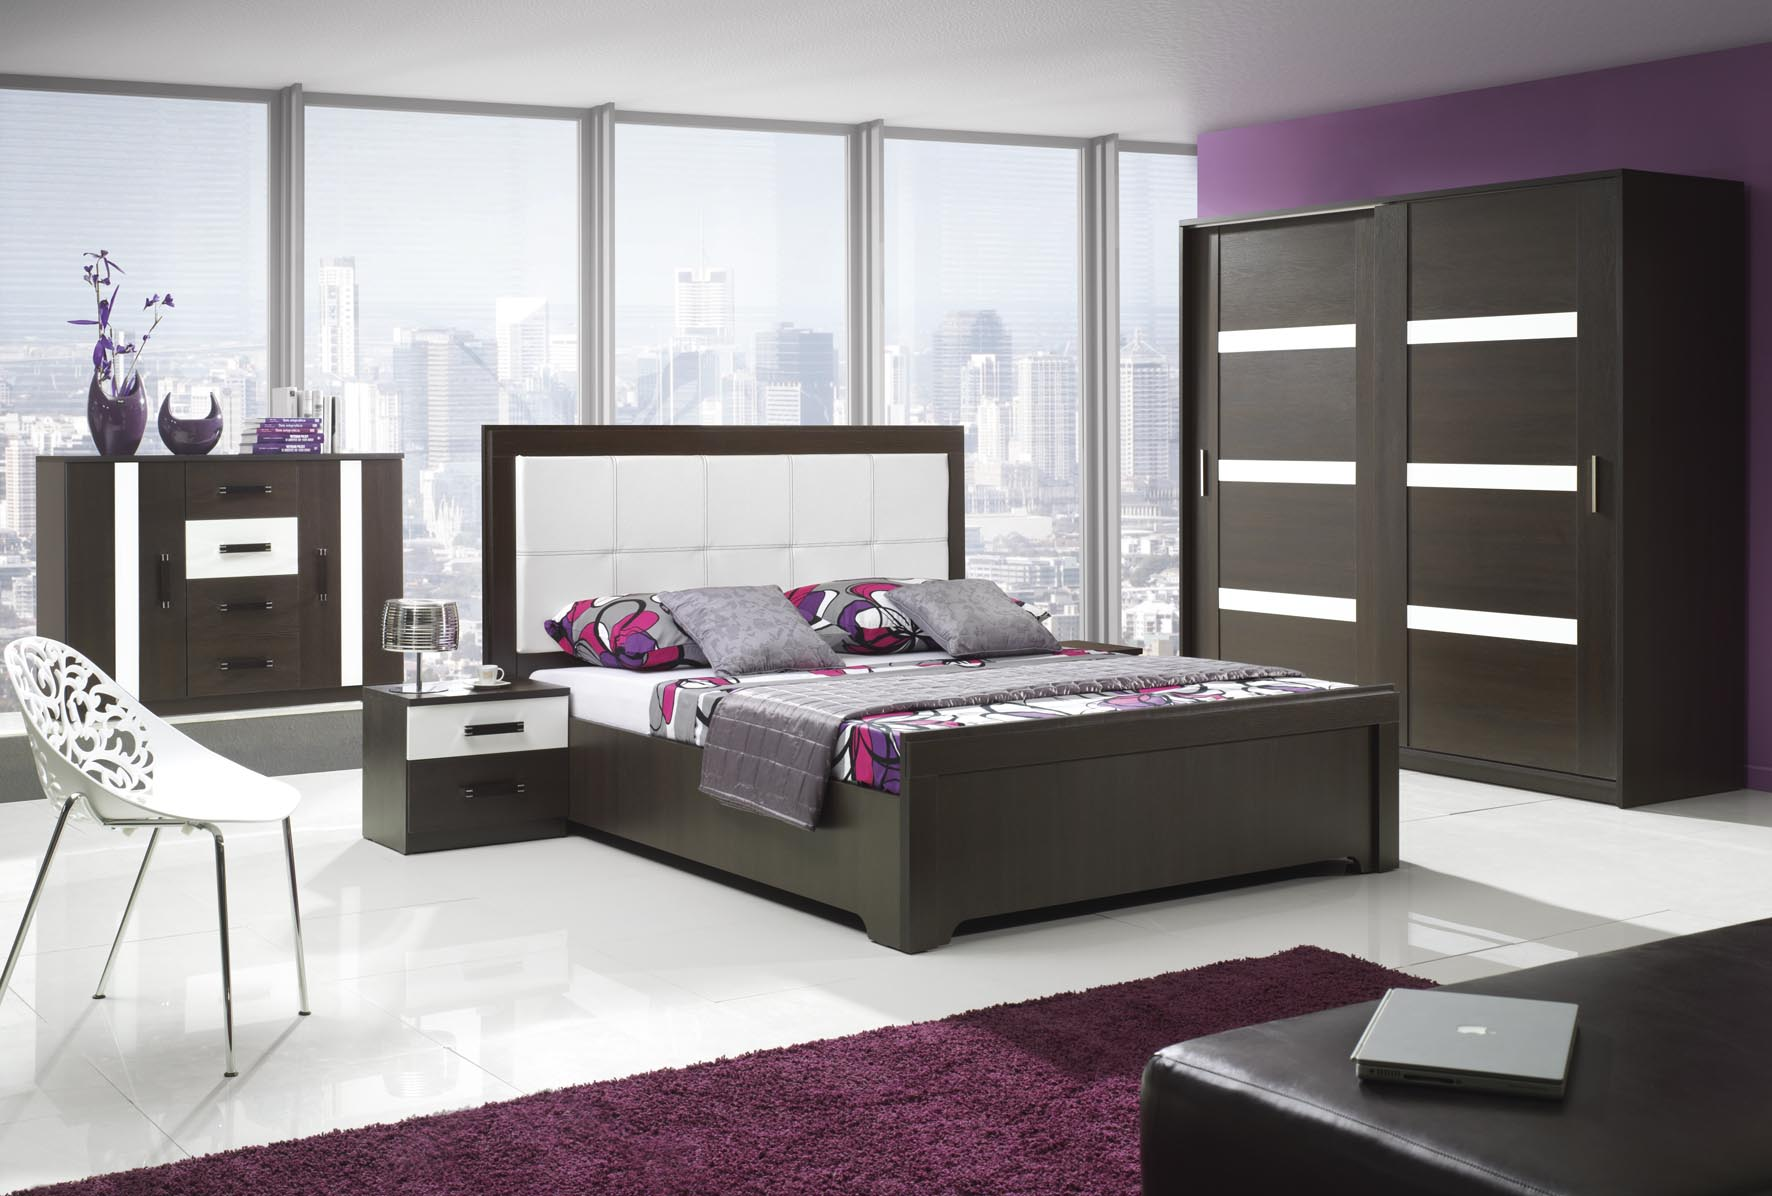 Furniture For Bedrooms Ideas 30 Awesome Bedroom Furniture Design Ideas